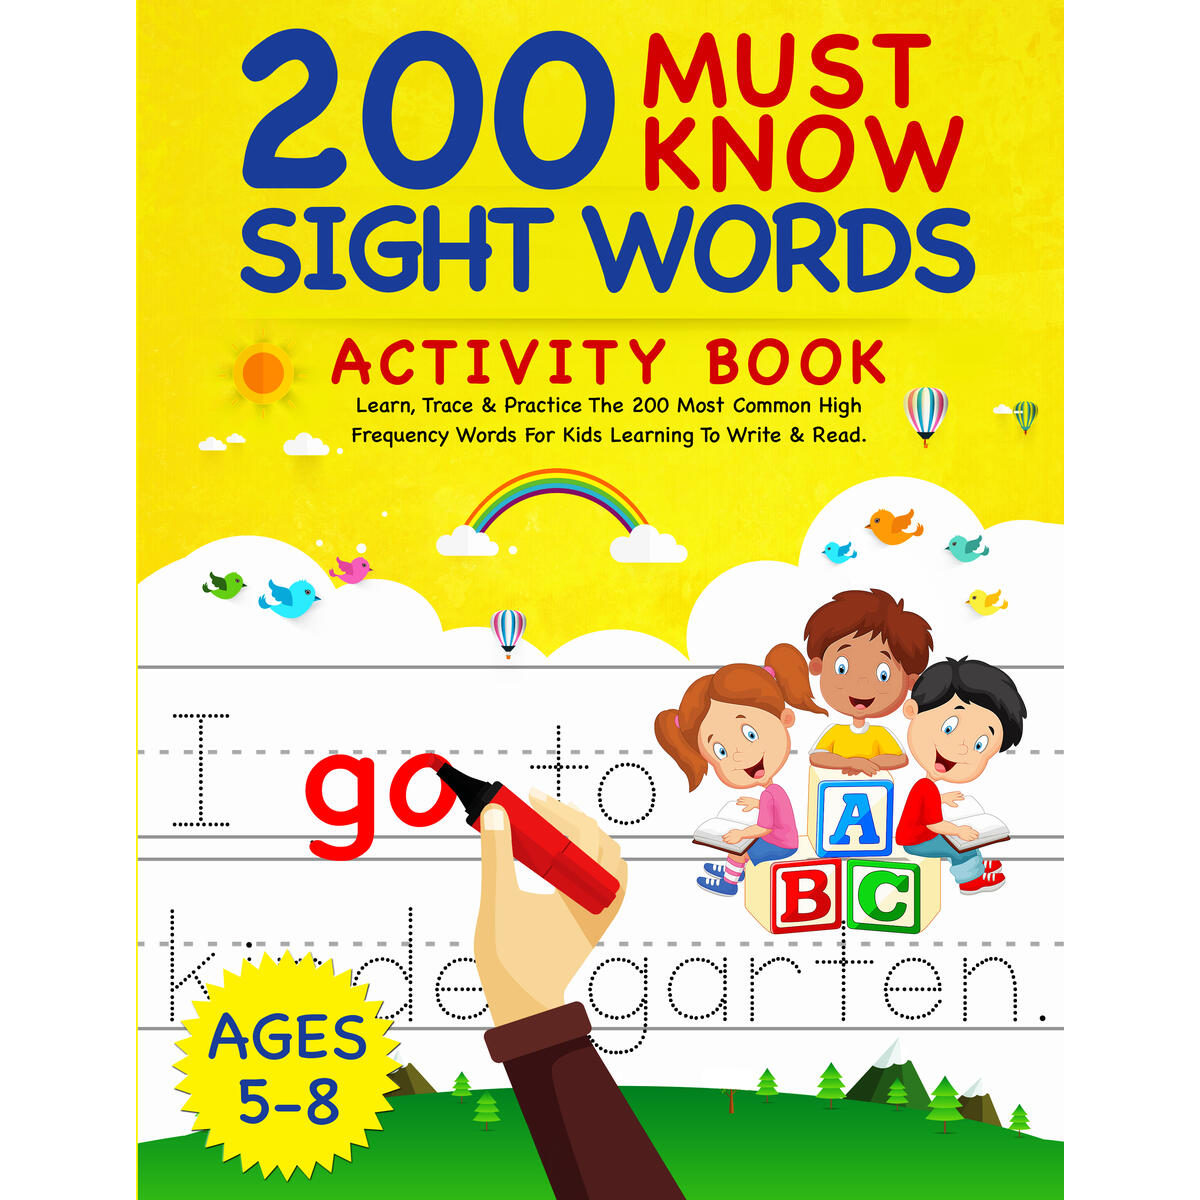 200 Must Know Sight Words